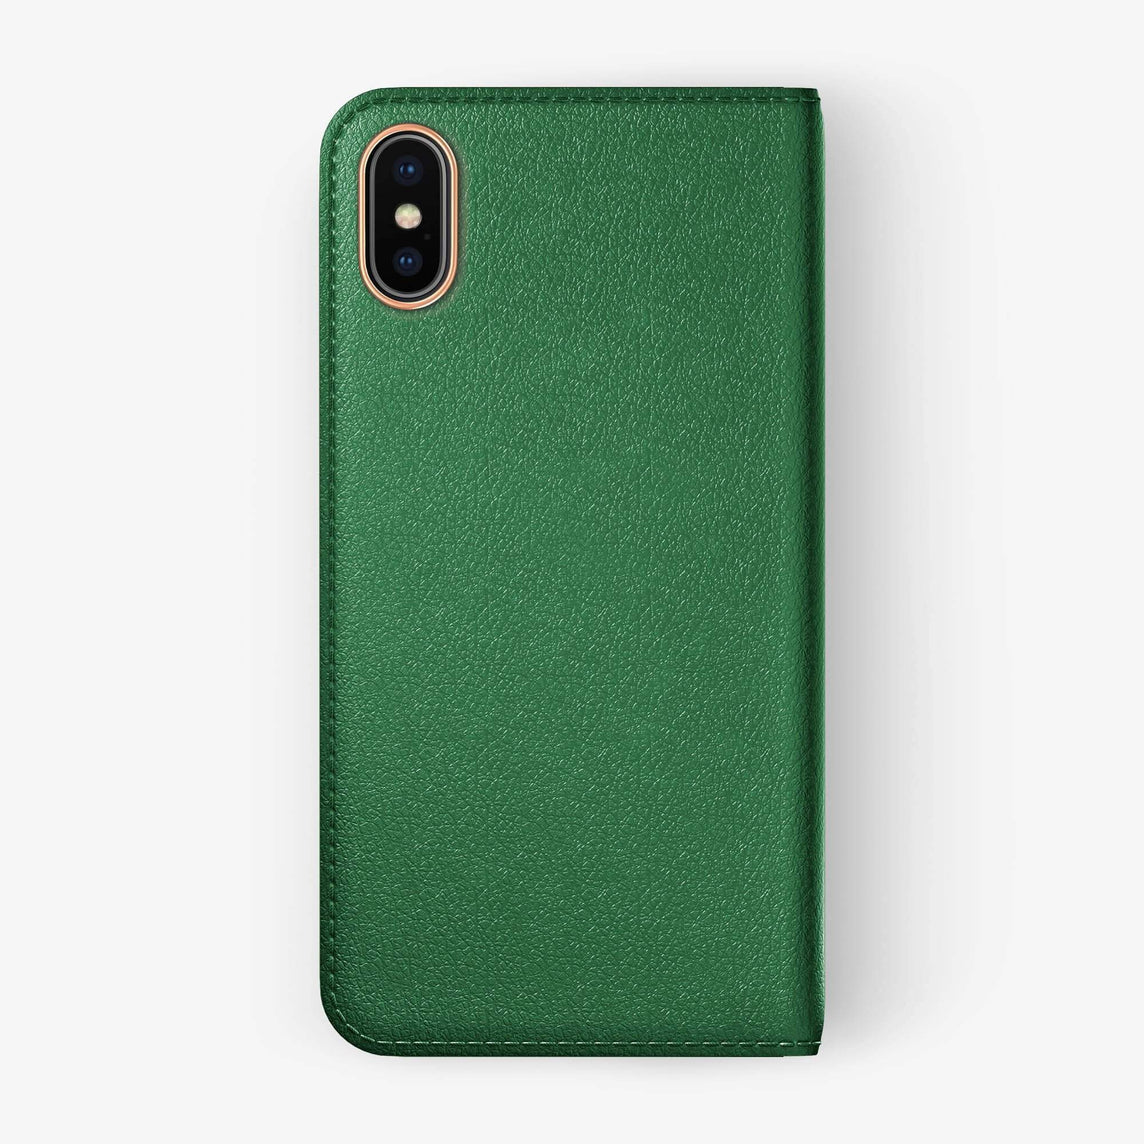 Green Calfskin iPhone Folio Case for iPhone XS Max finishing rose gold - Hadoro Luxury Cases - img5